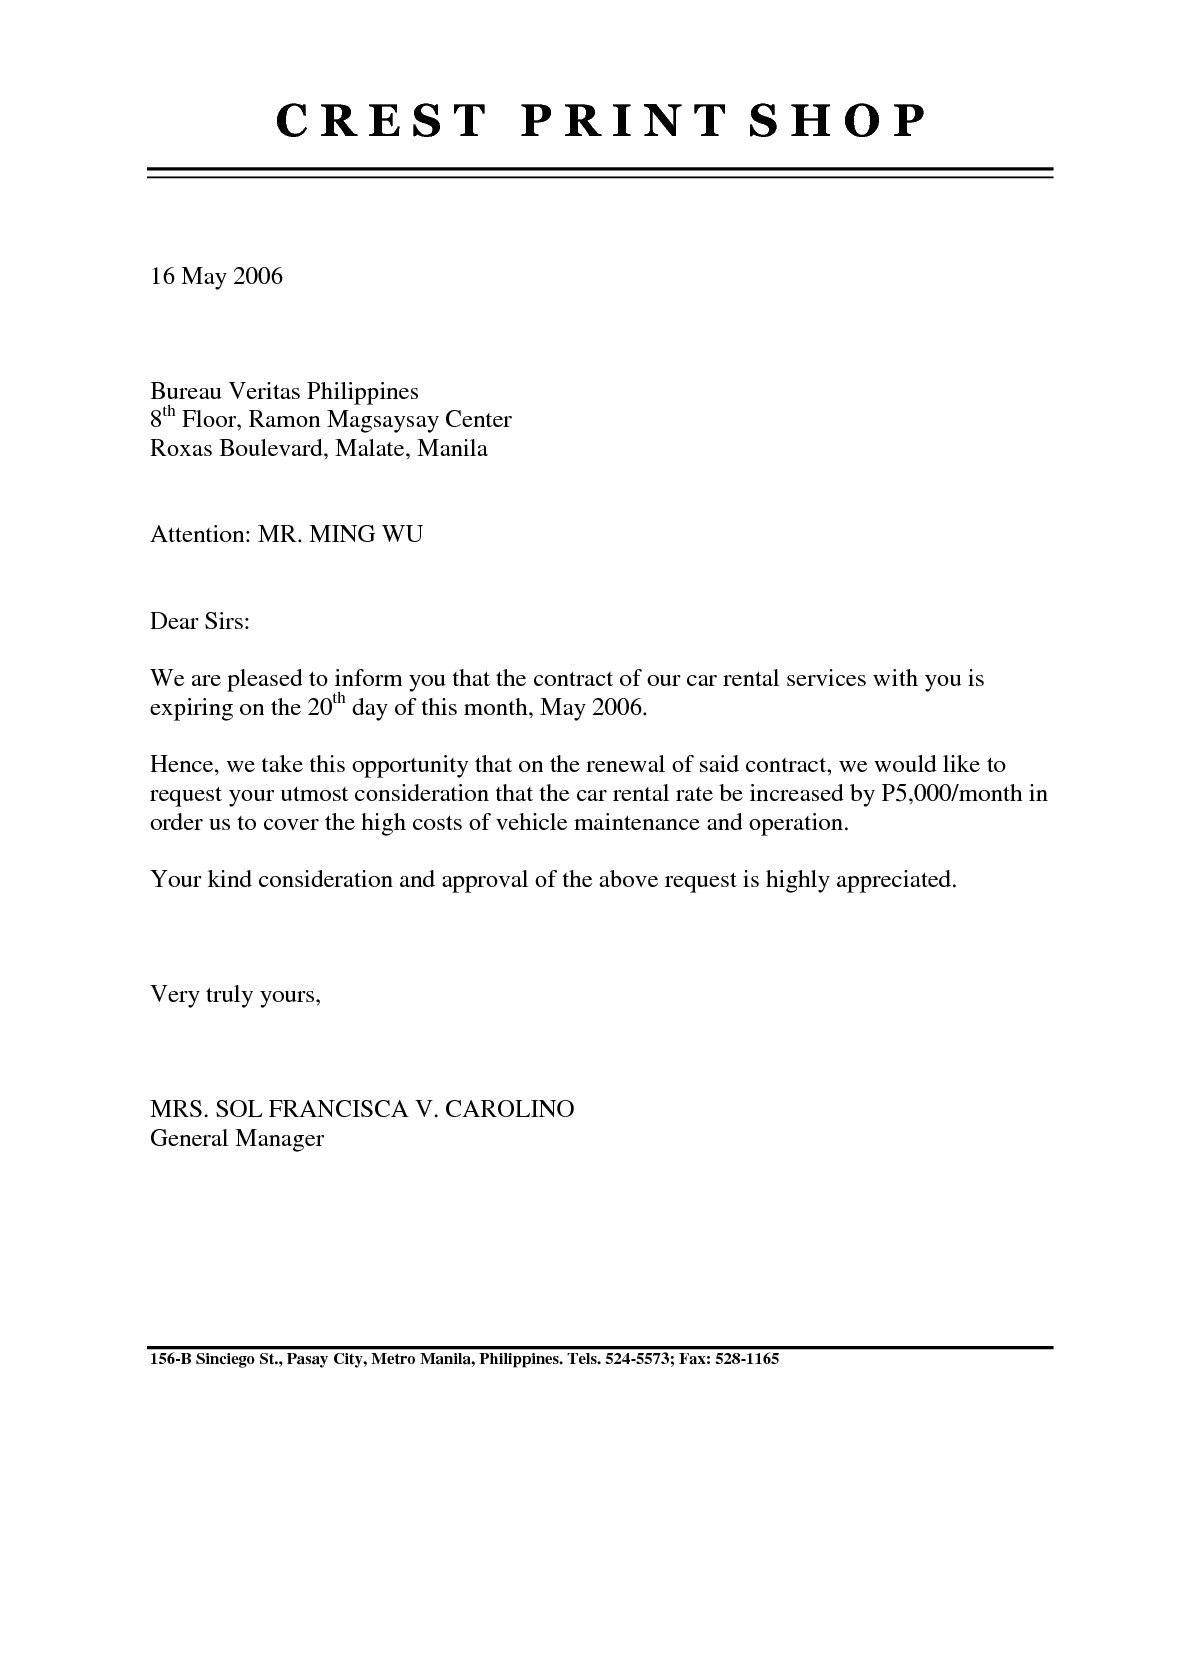 Routine inspection letter to tenant template examples letter cover routine inspection letter to tenant template tenancy agreement renewal template altavistaventures Choice Image